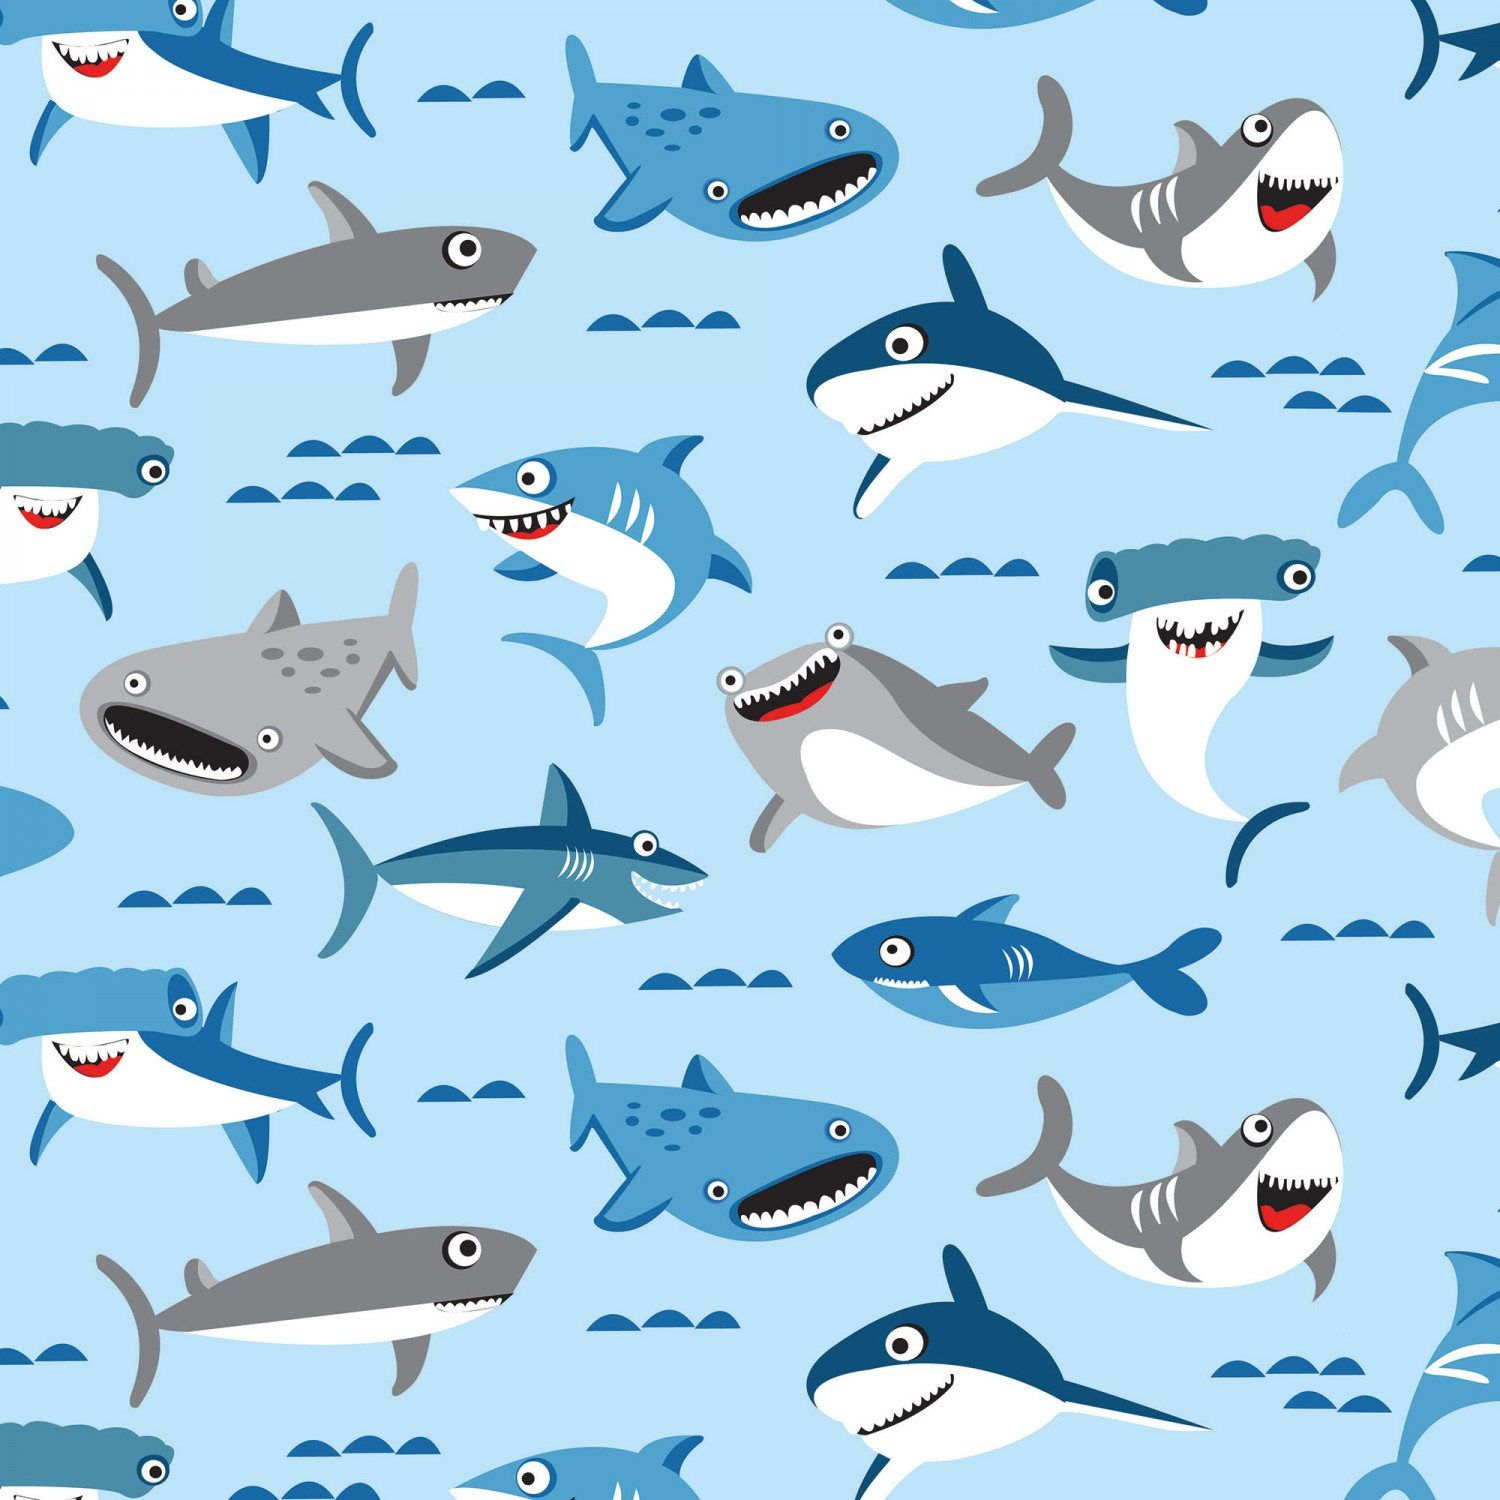 Shark Fabric Shark Town Ocean Fabric Boys Fabric Children S Fabric By Riley Blake 6350 Shark Illustration Ocean Fabric Shark